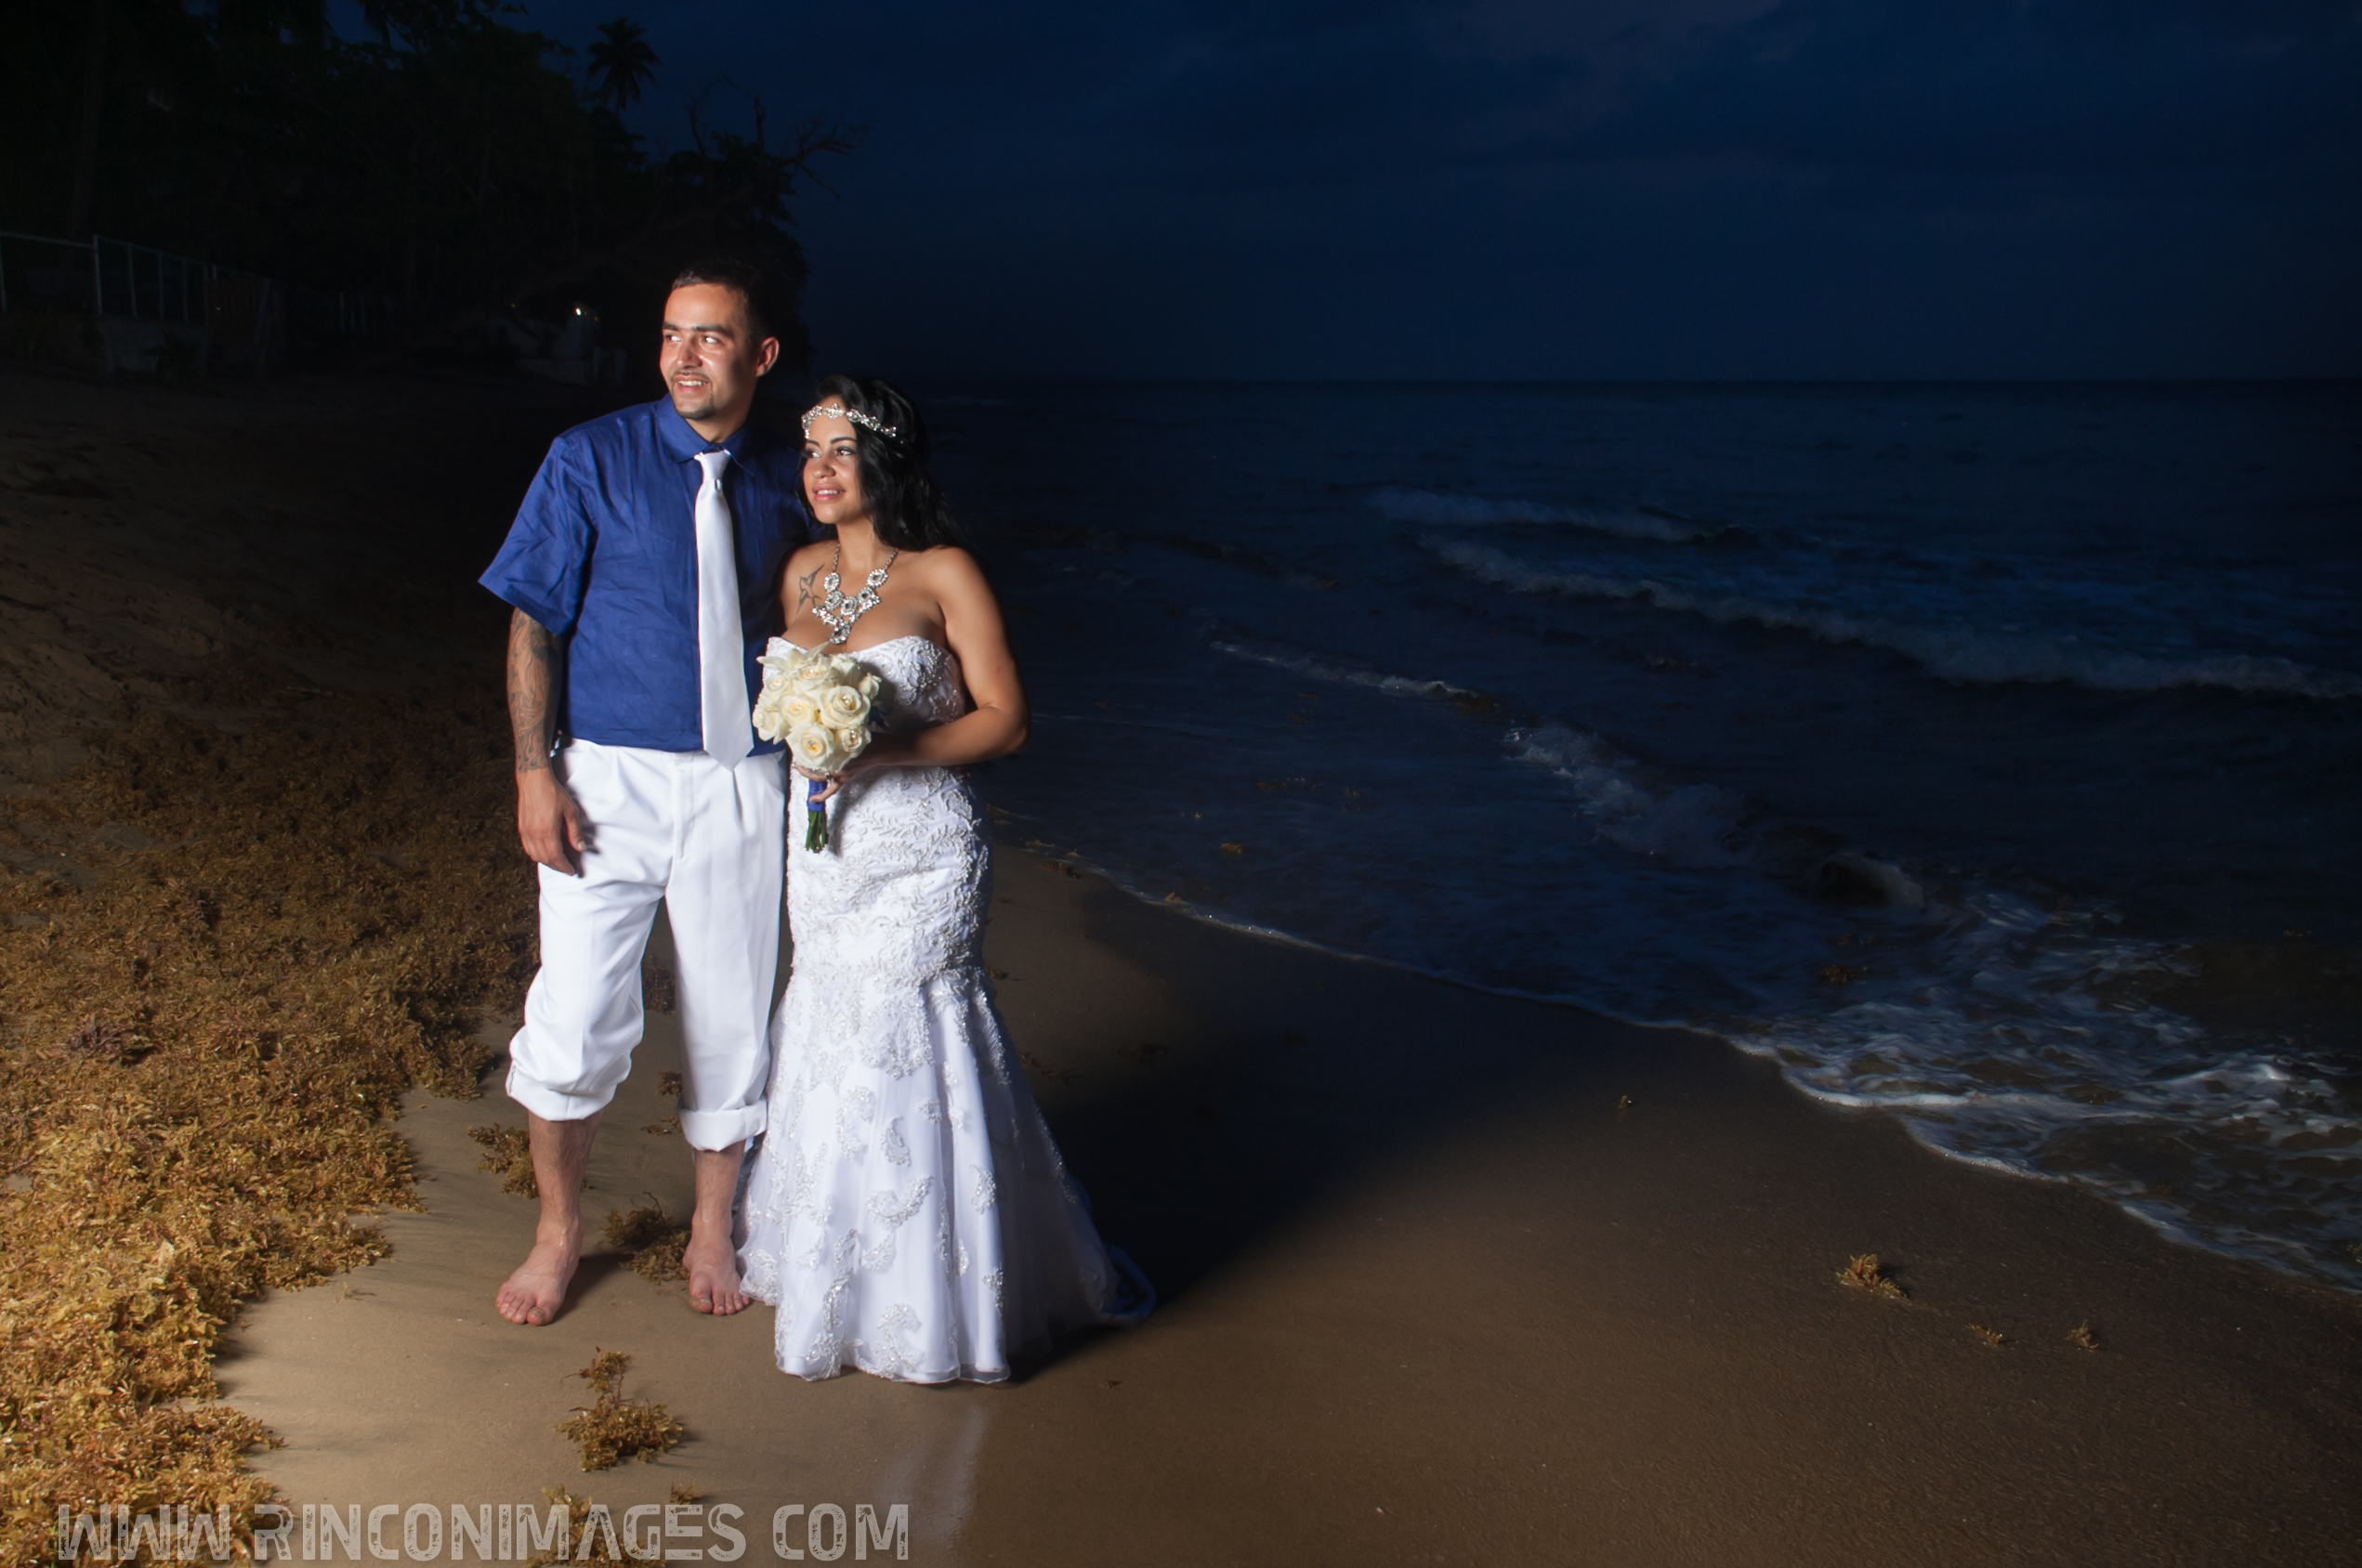 Wedding Photographer Puerto Rico Bride And Groom Are Barefoot On The Beach She Is Wearing A White Dress